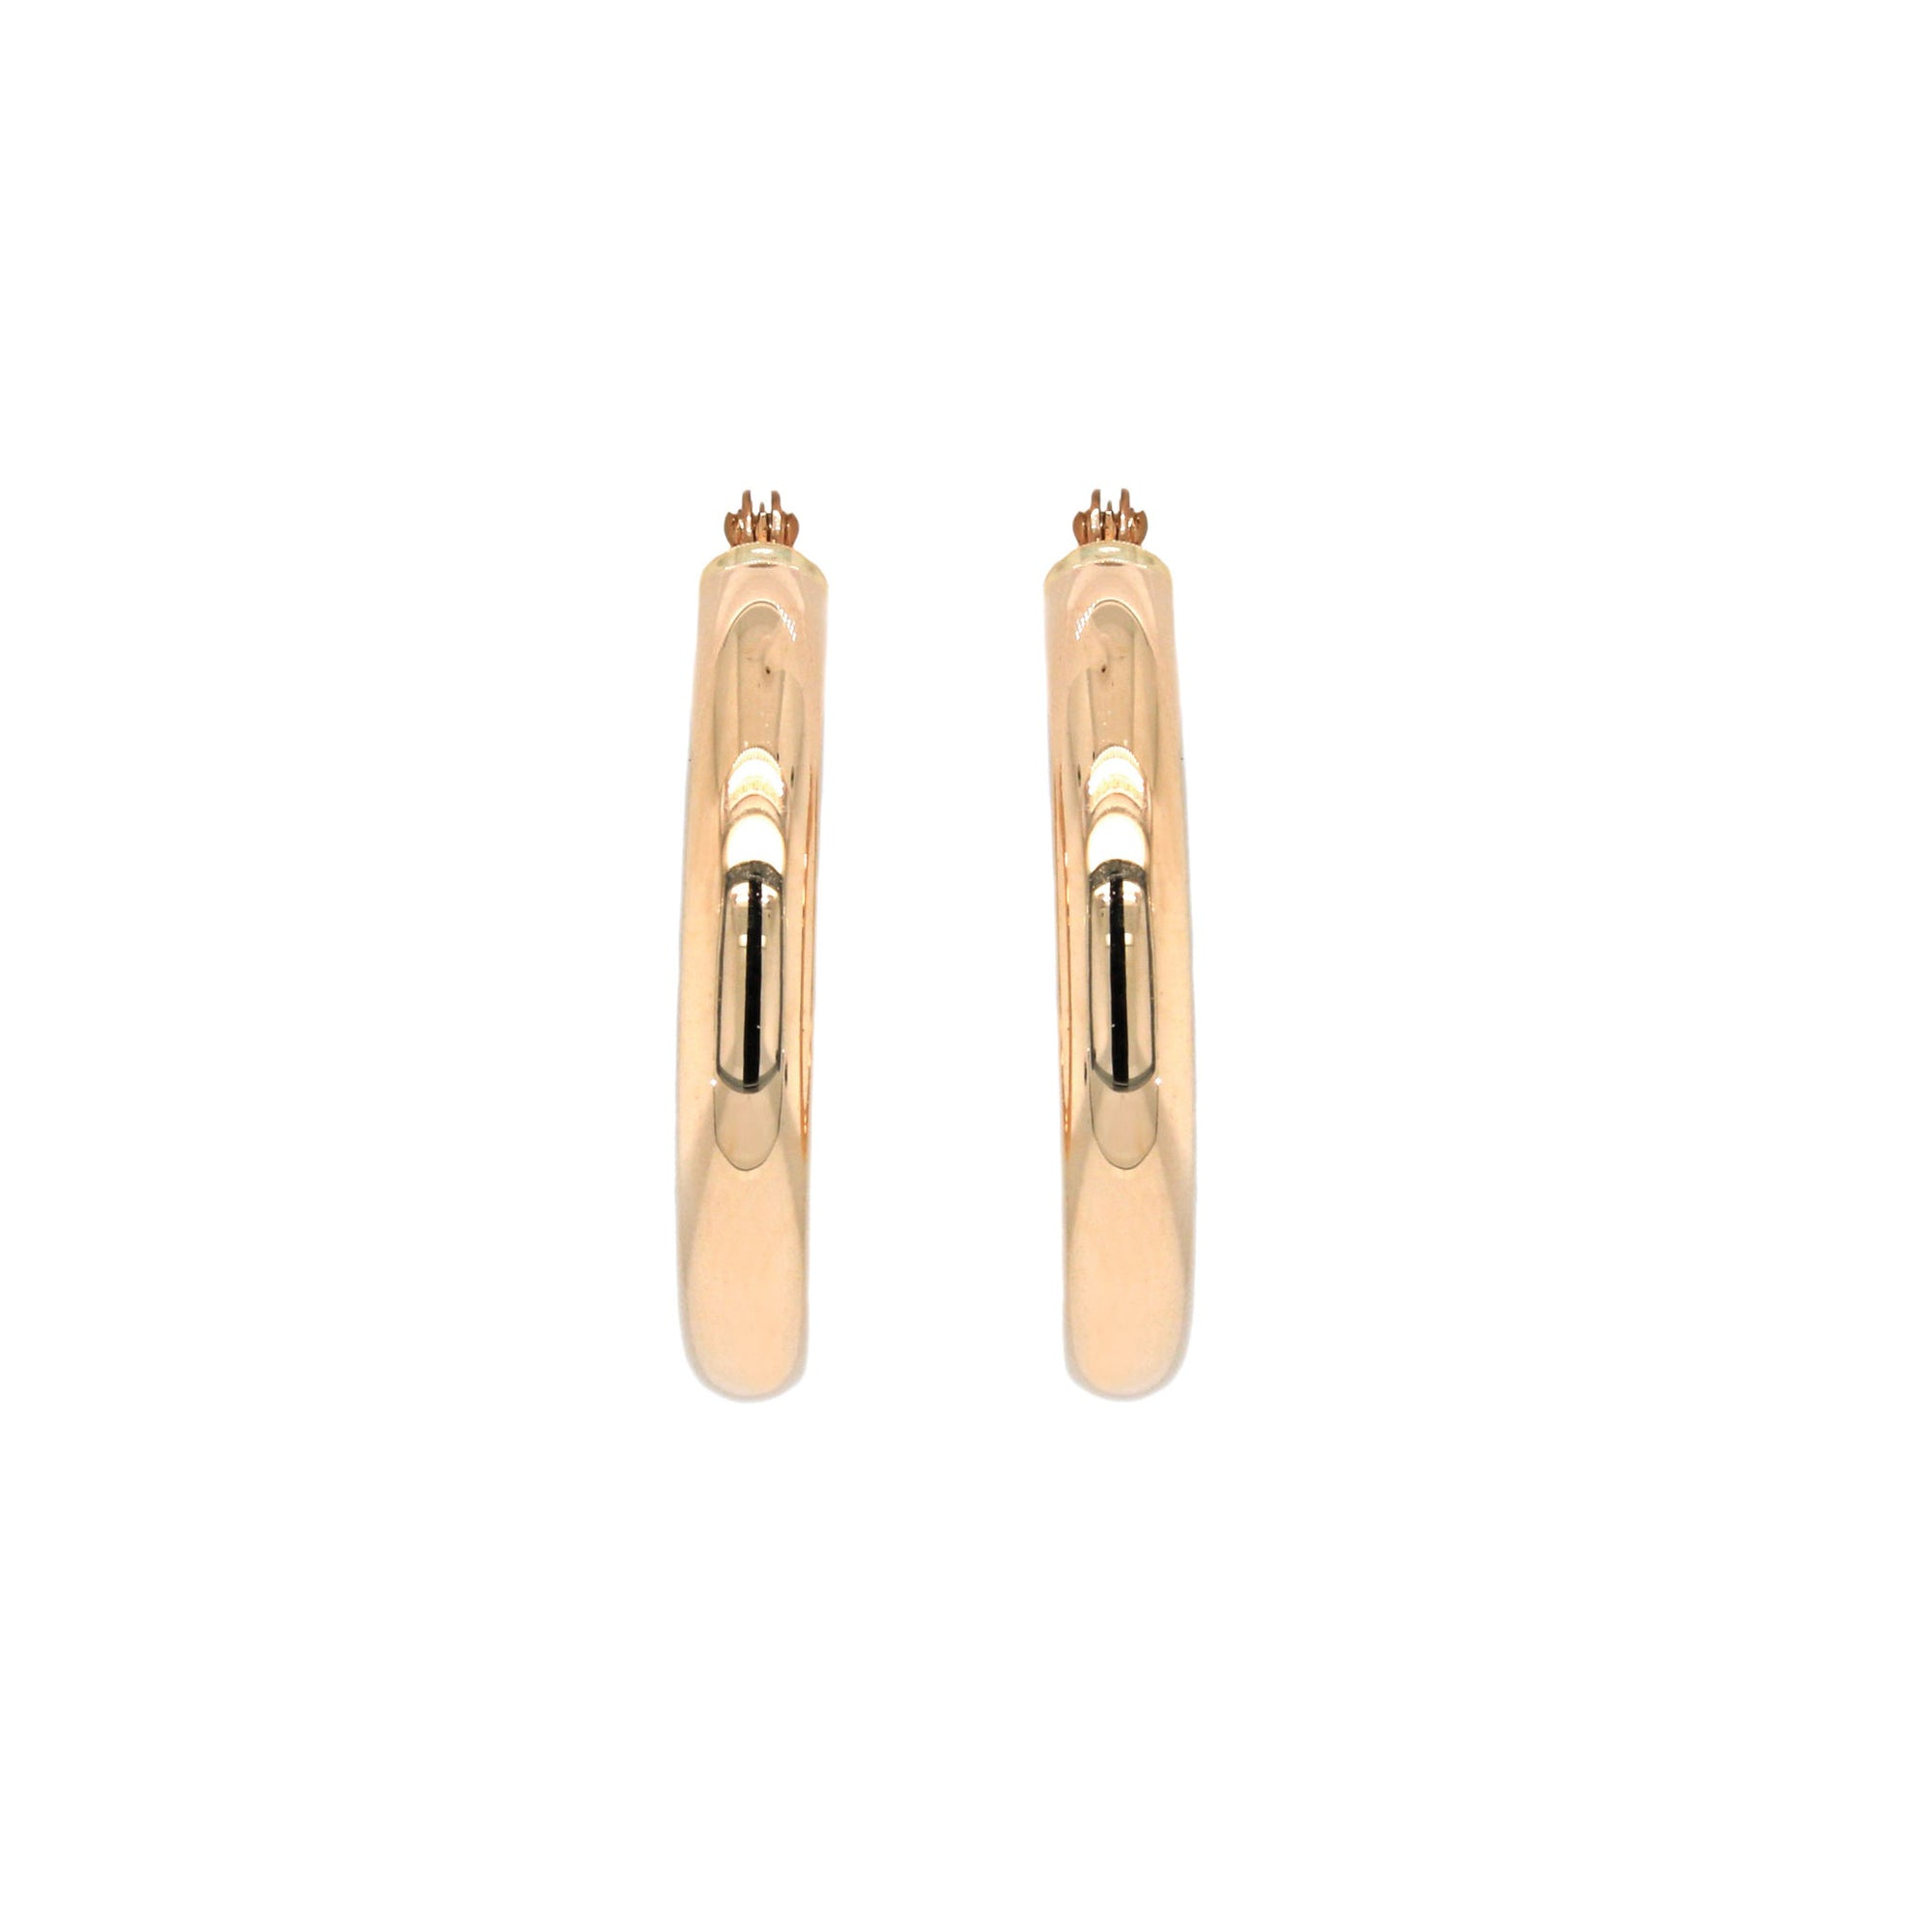 25mm 14K Gold Hoop Earrings